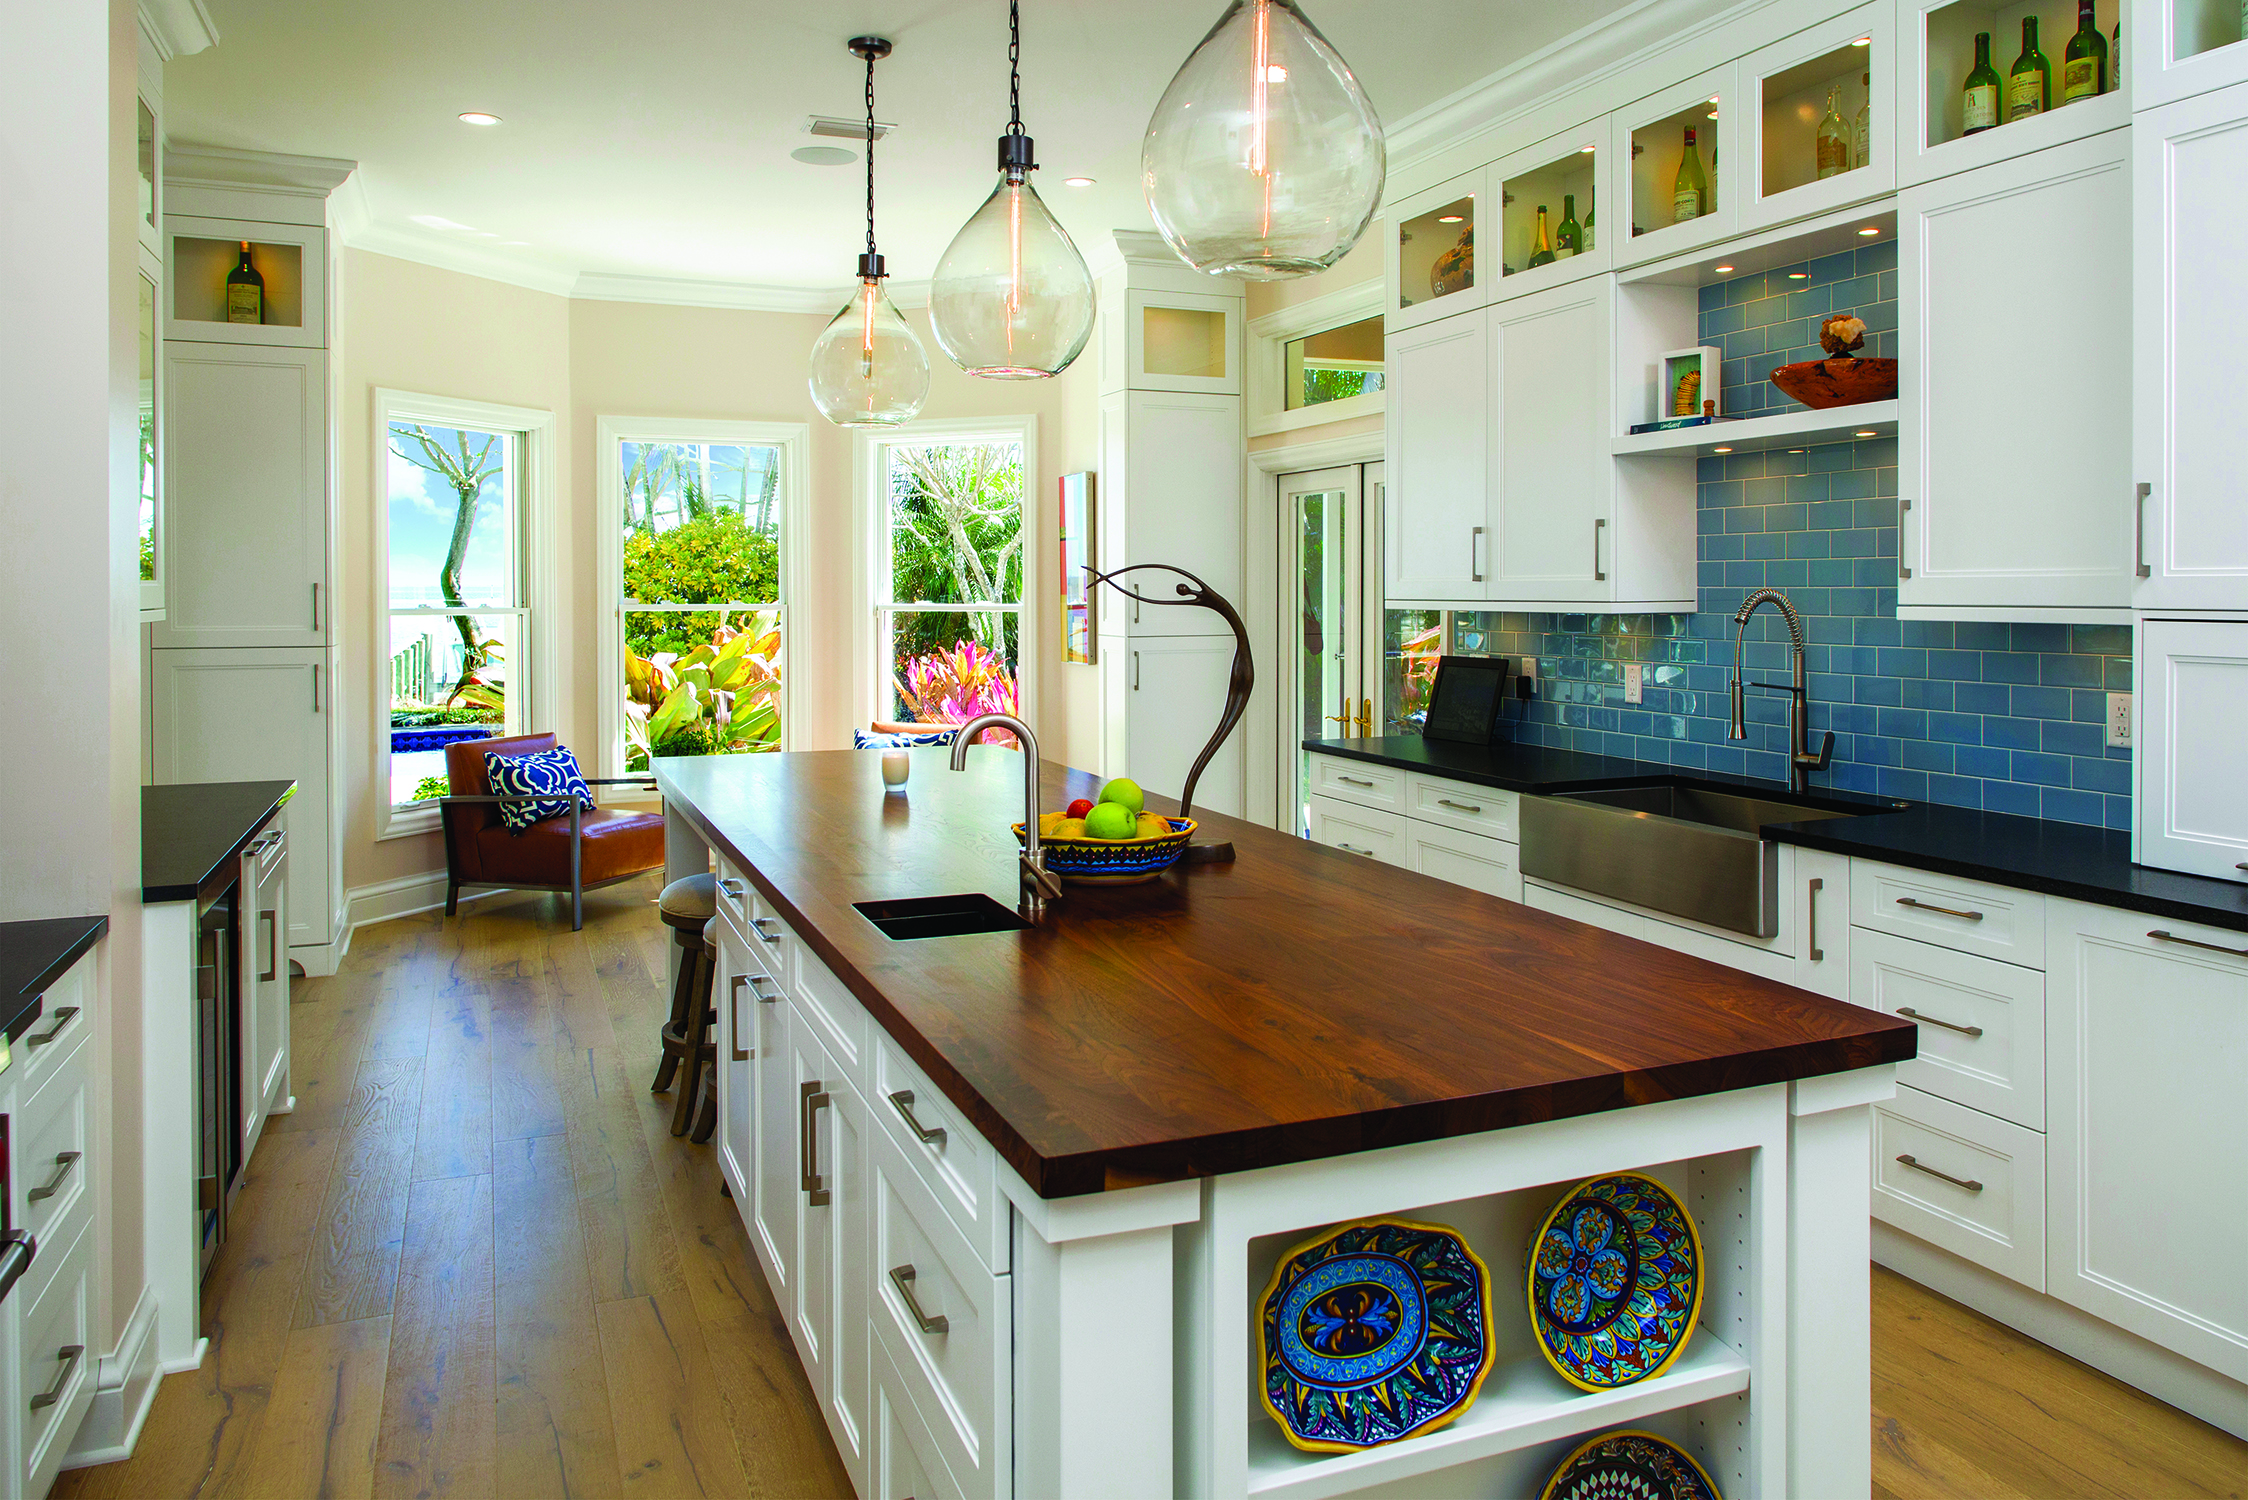 Kitchen and Bath Remodeling Trends to Watch - Living Magazine